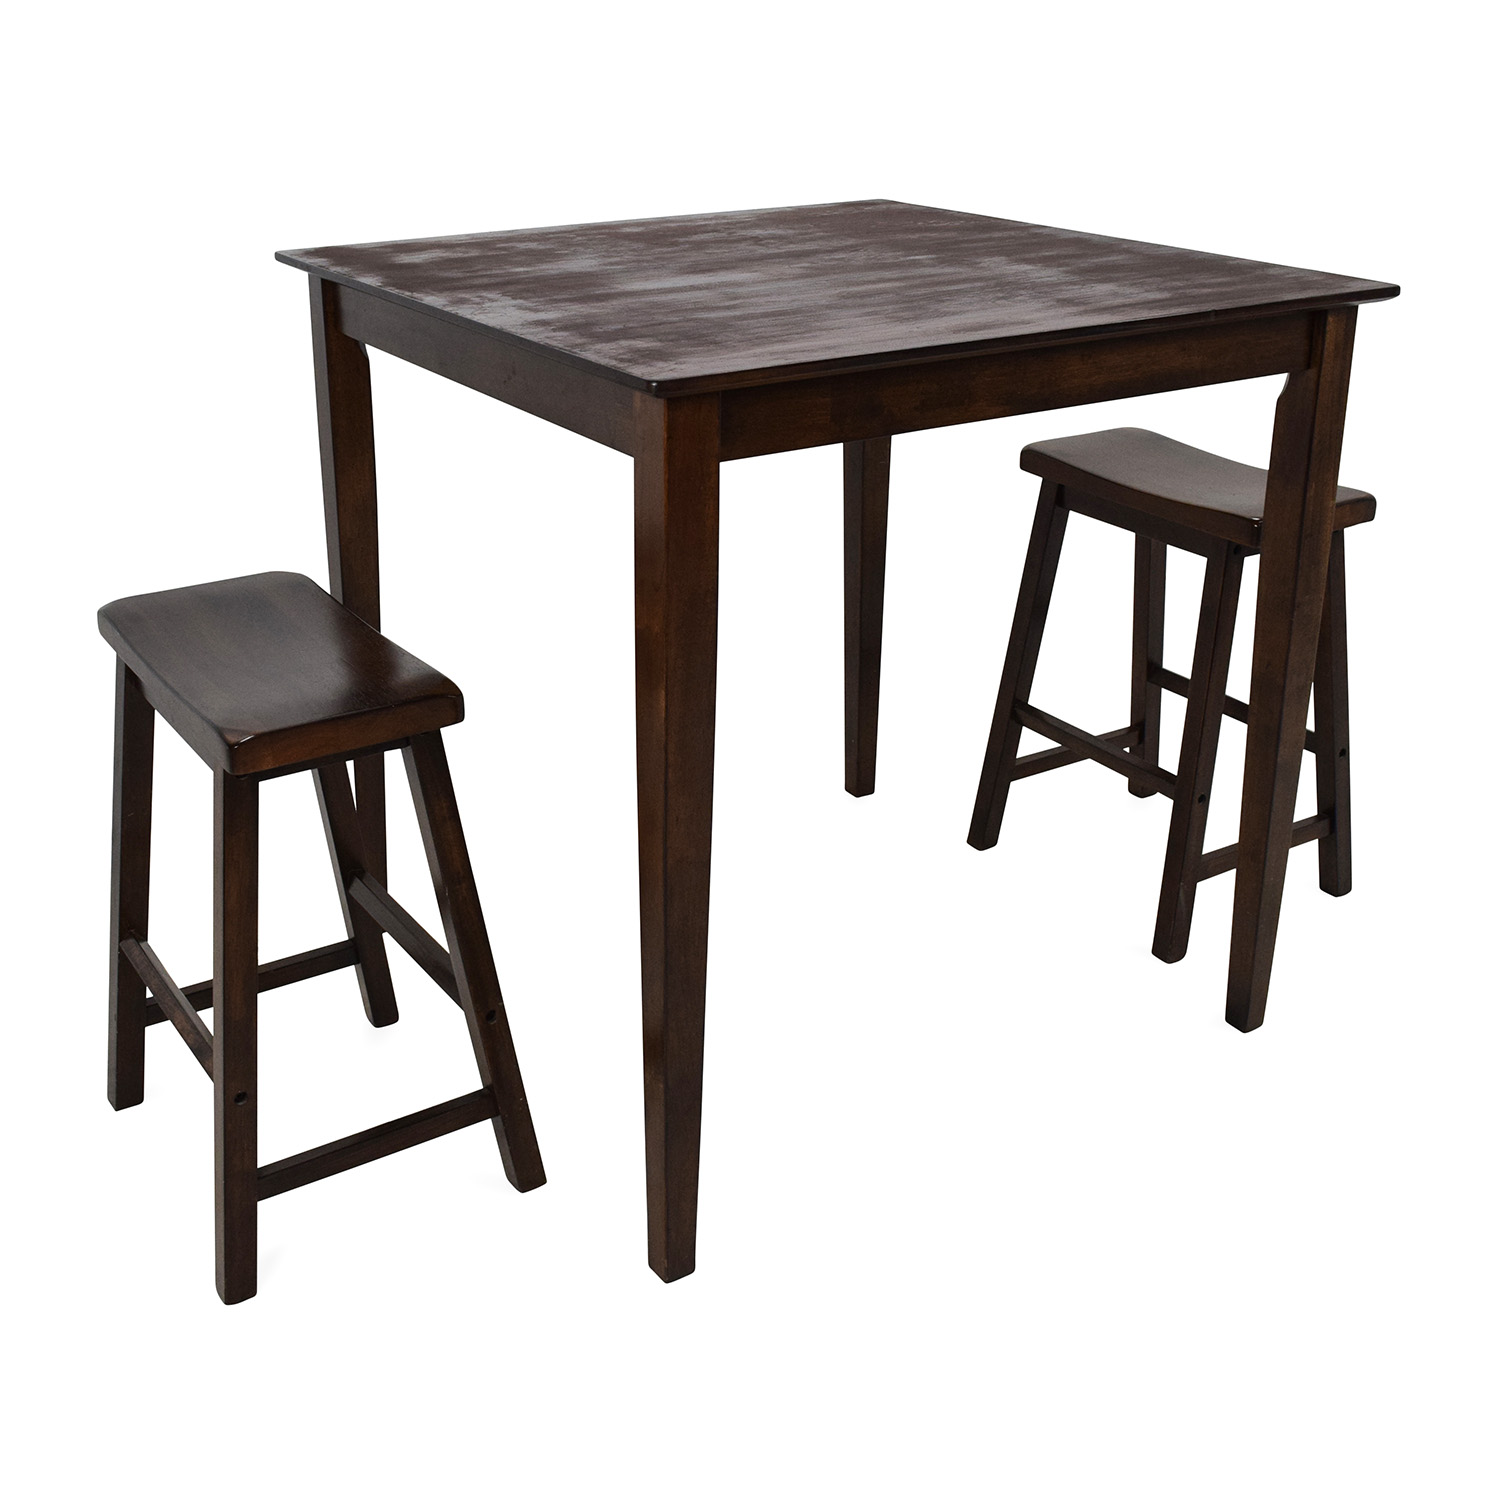 buy Ashley Furniture Ashley Furniture Kitchen Table and Chairs online